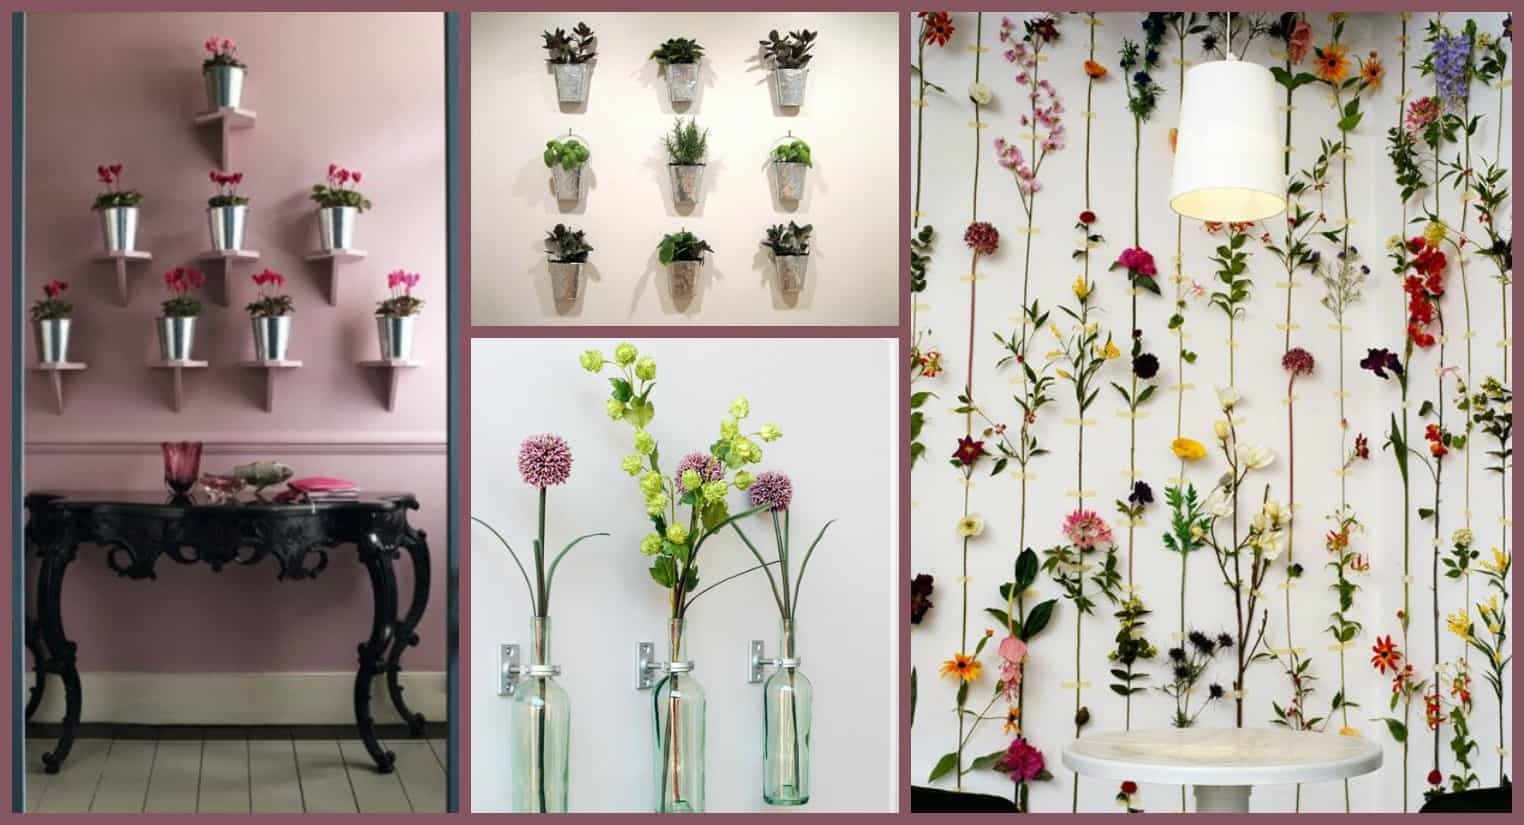 Diy 10 idee su come decorare una parete di casa - Decorare le pareti ...